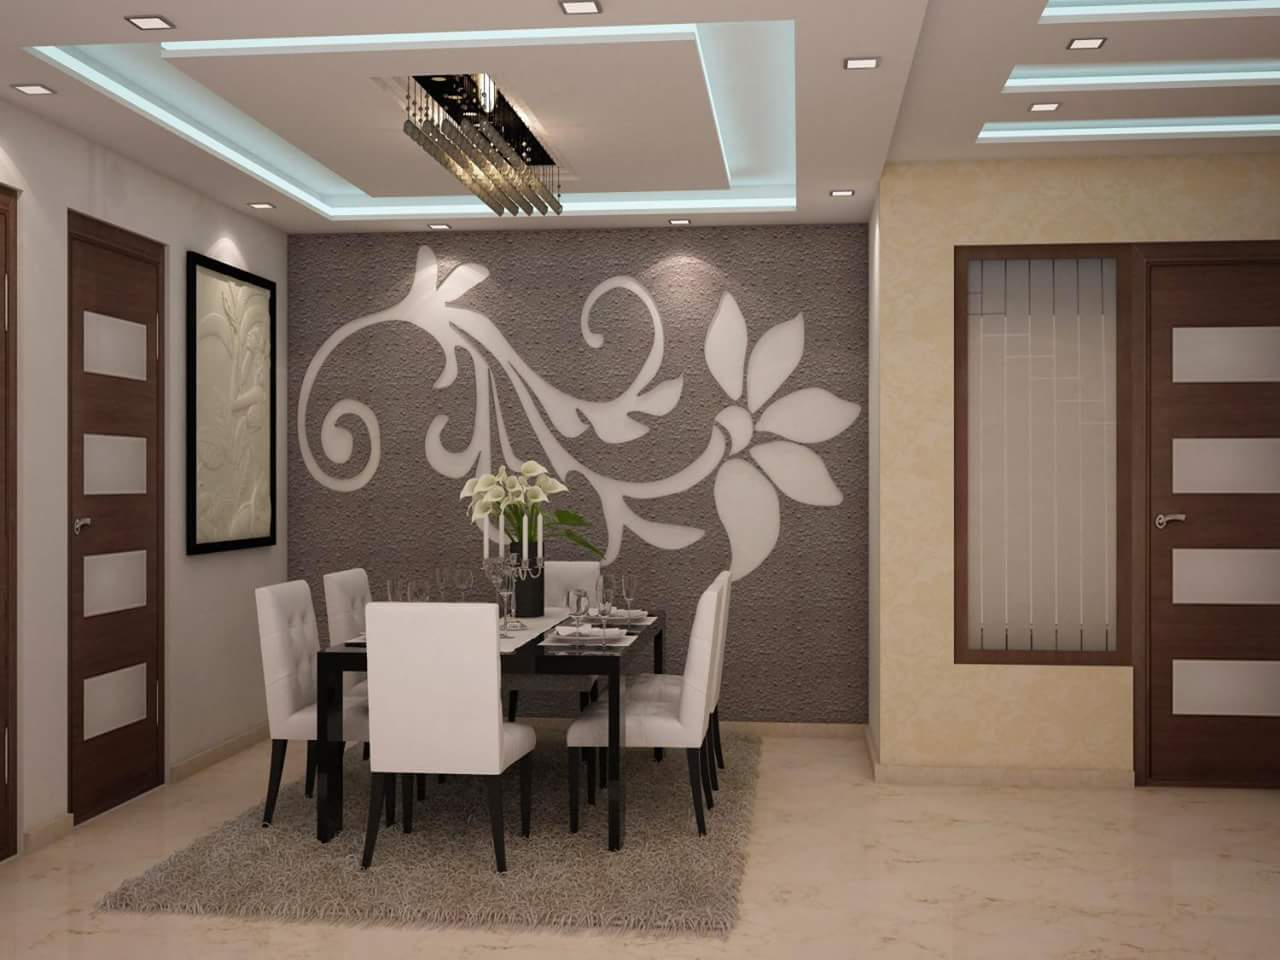 R7 INTERIORS, INTERIOR DECORATORS IN HYDERABAD, INTERIOR DECORATORS IN UPPAL, INTERIOR DECORATORS IN MANIKONDA, INTERIOR DECORATORS IN GACCHIBOWLI, INTERIOR DECORATORS IN TOLICHOWKI, INTERIOR DECORATORS IN BEERUMGU